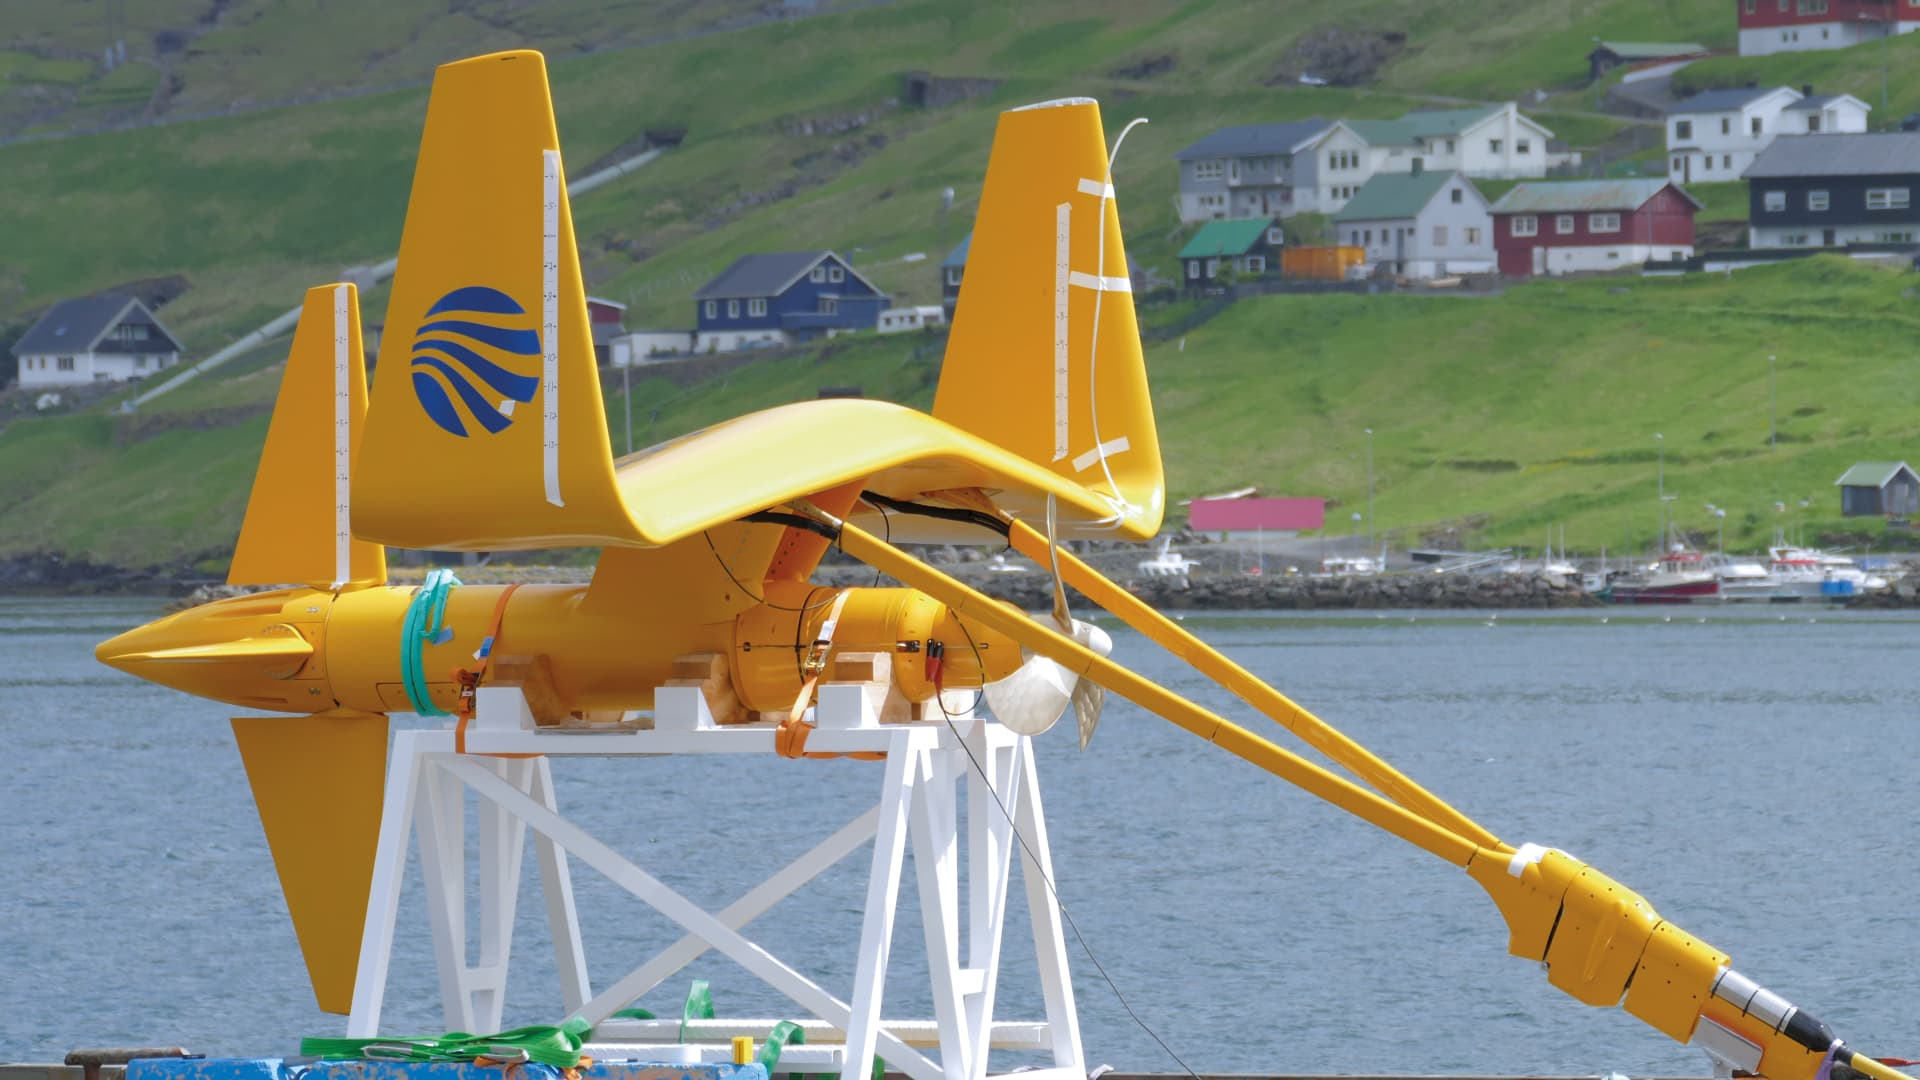 Minesto's system is based on the idea of using a kite-like system in marine environments.